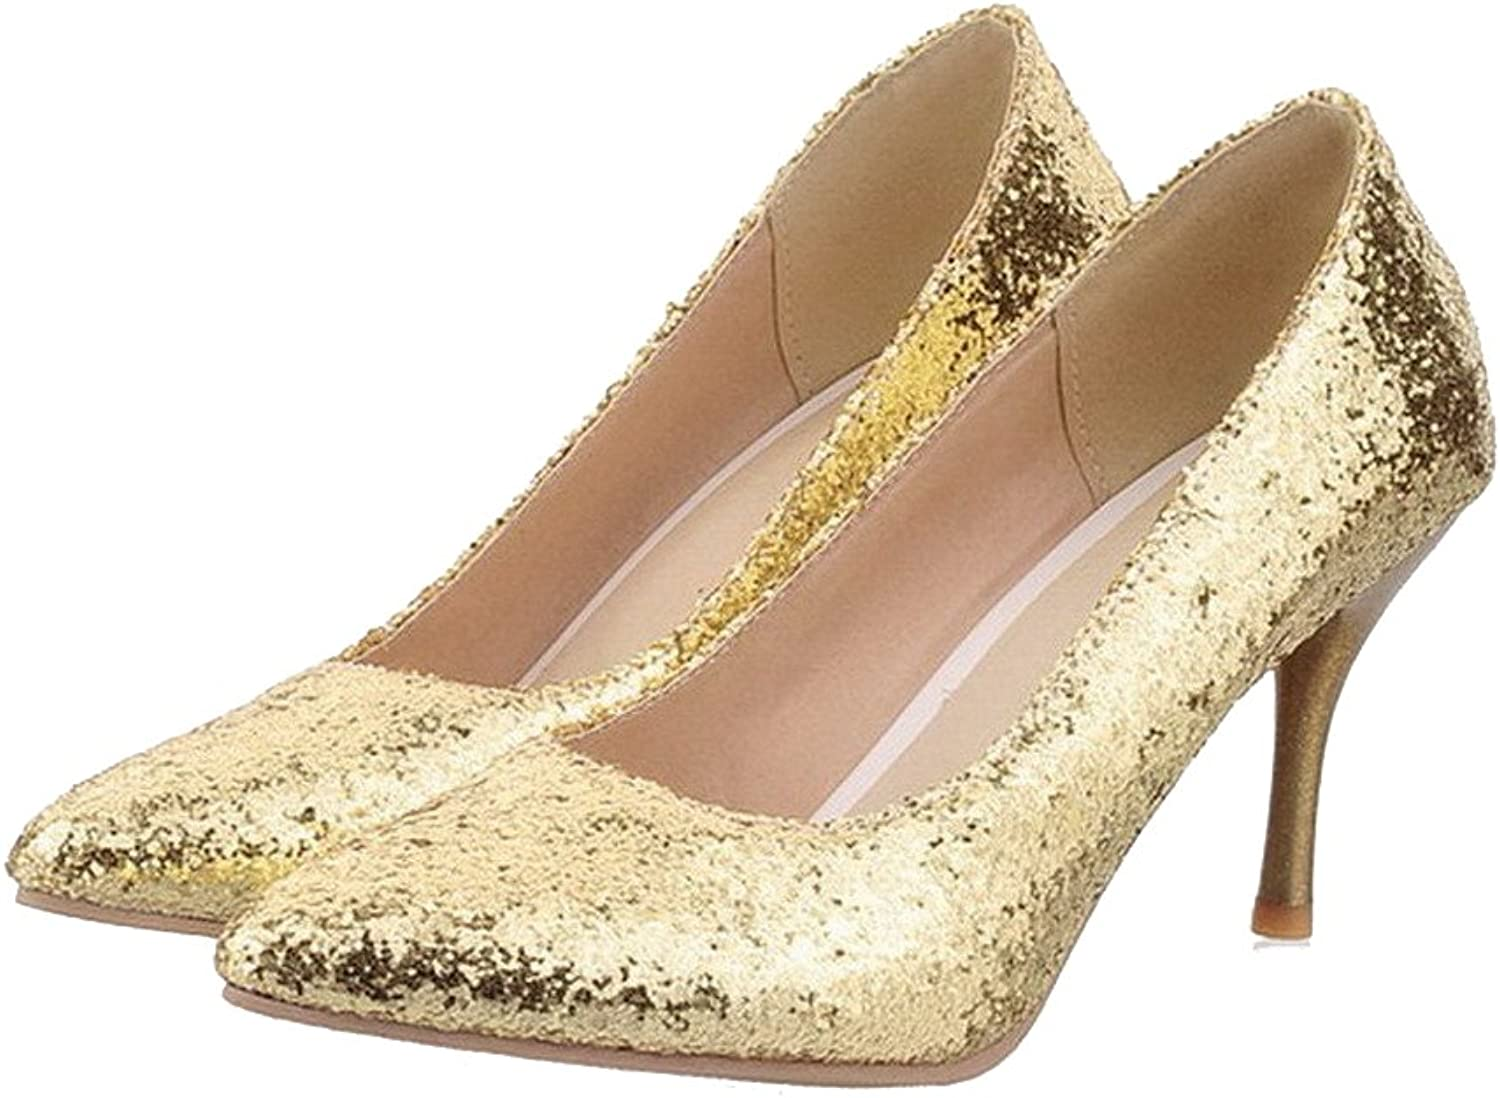 AmoonyFashion Womens Closed Pointed Toe High Heel Stiletto PU Frosted Solid Pumps with Sequin, gold, 10 B(M) US